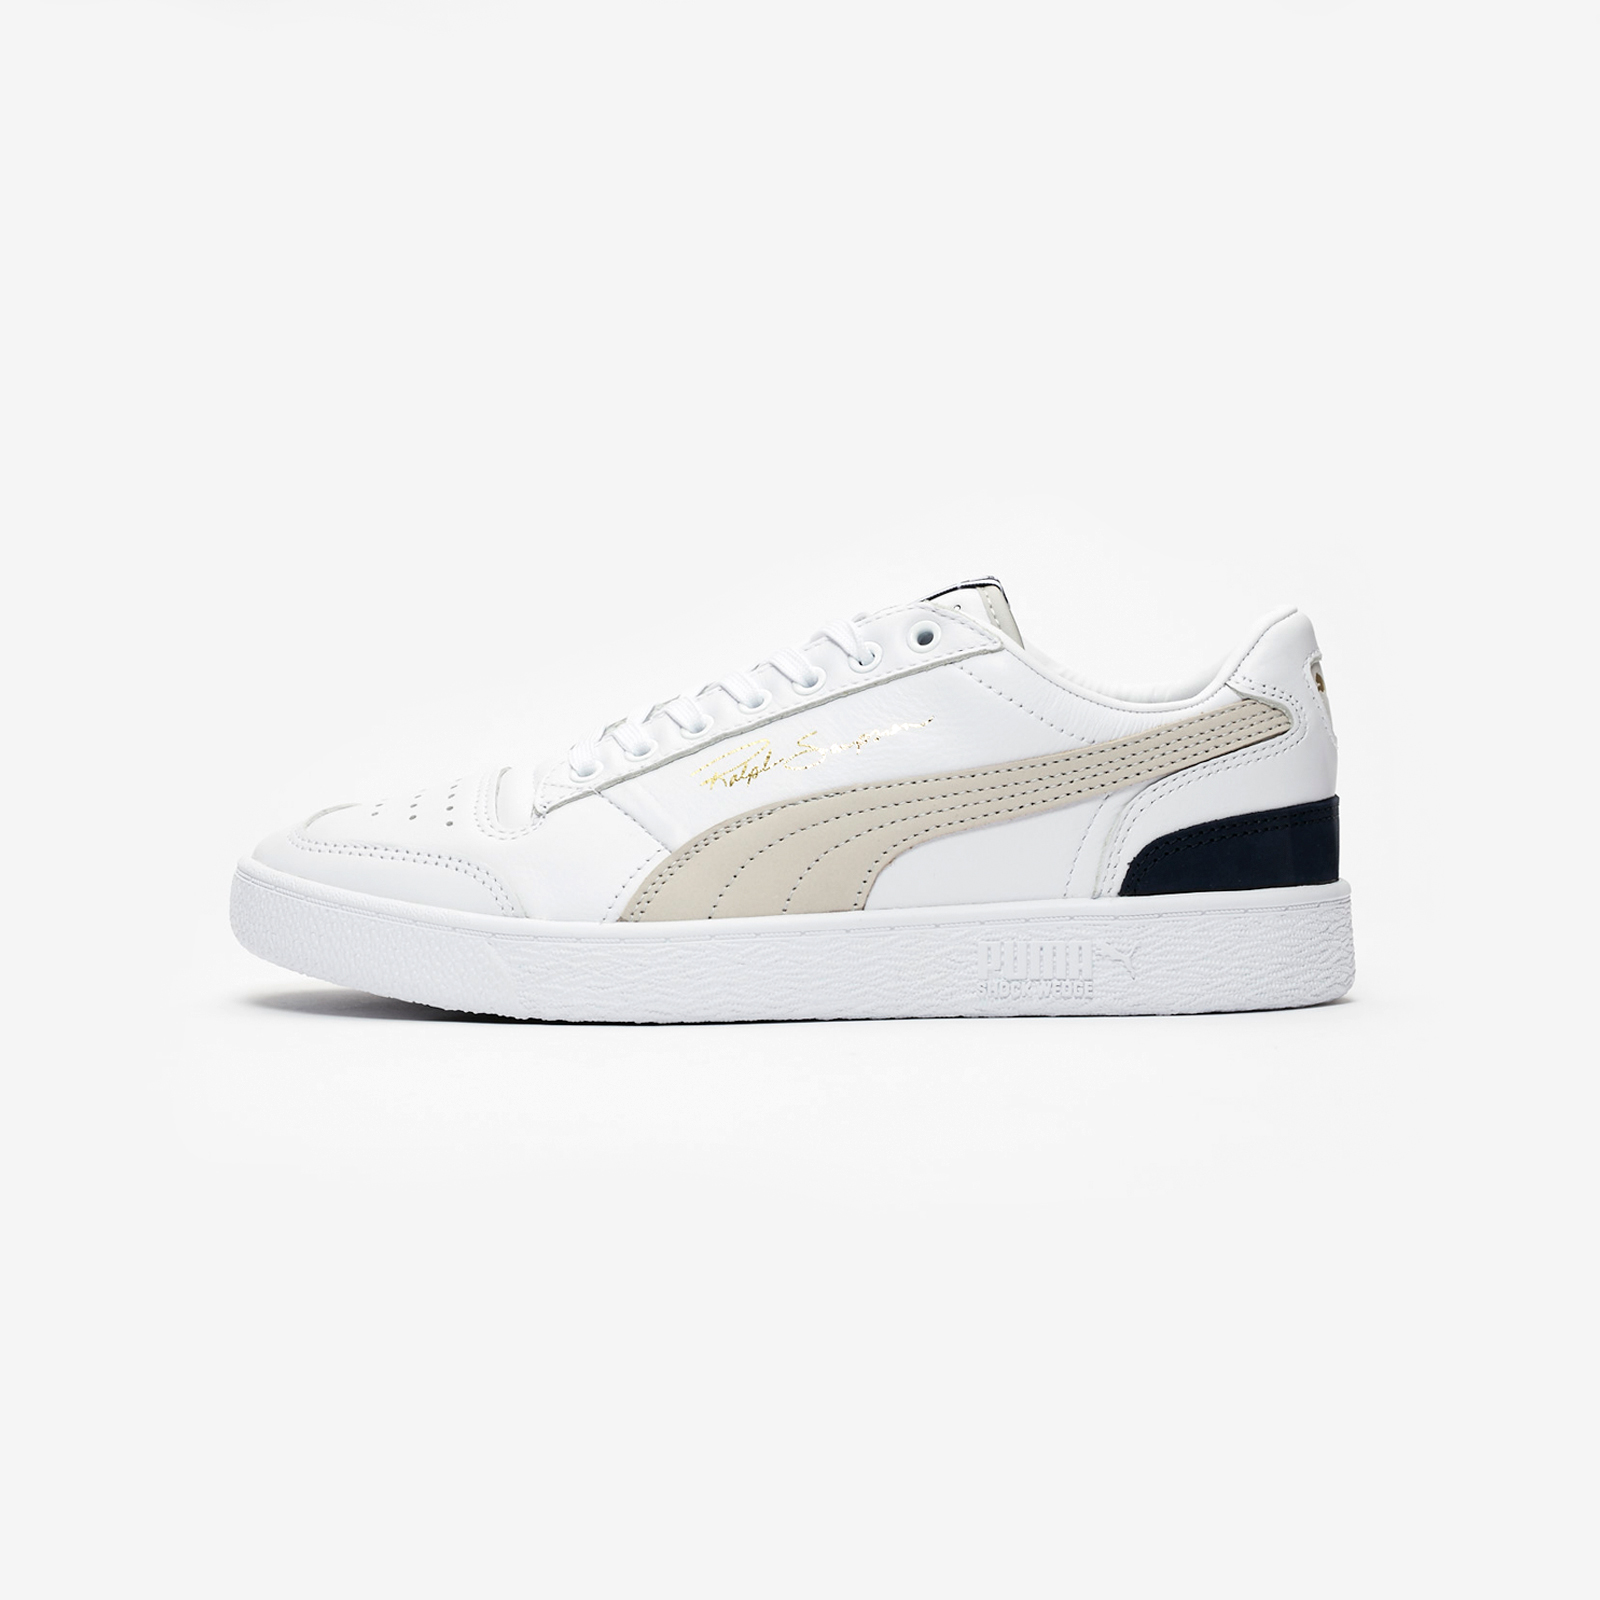 Puma Ralph Sampson Low OG 370719 01 Sneakersnstuff I